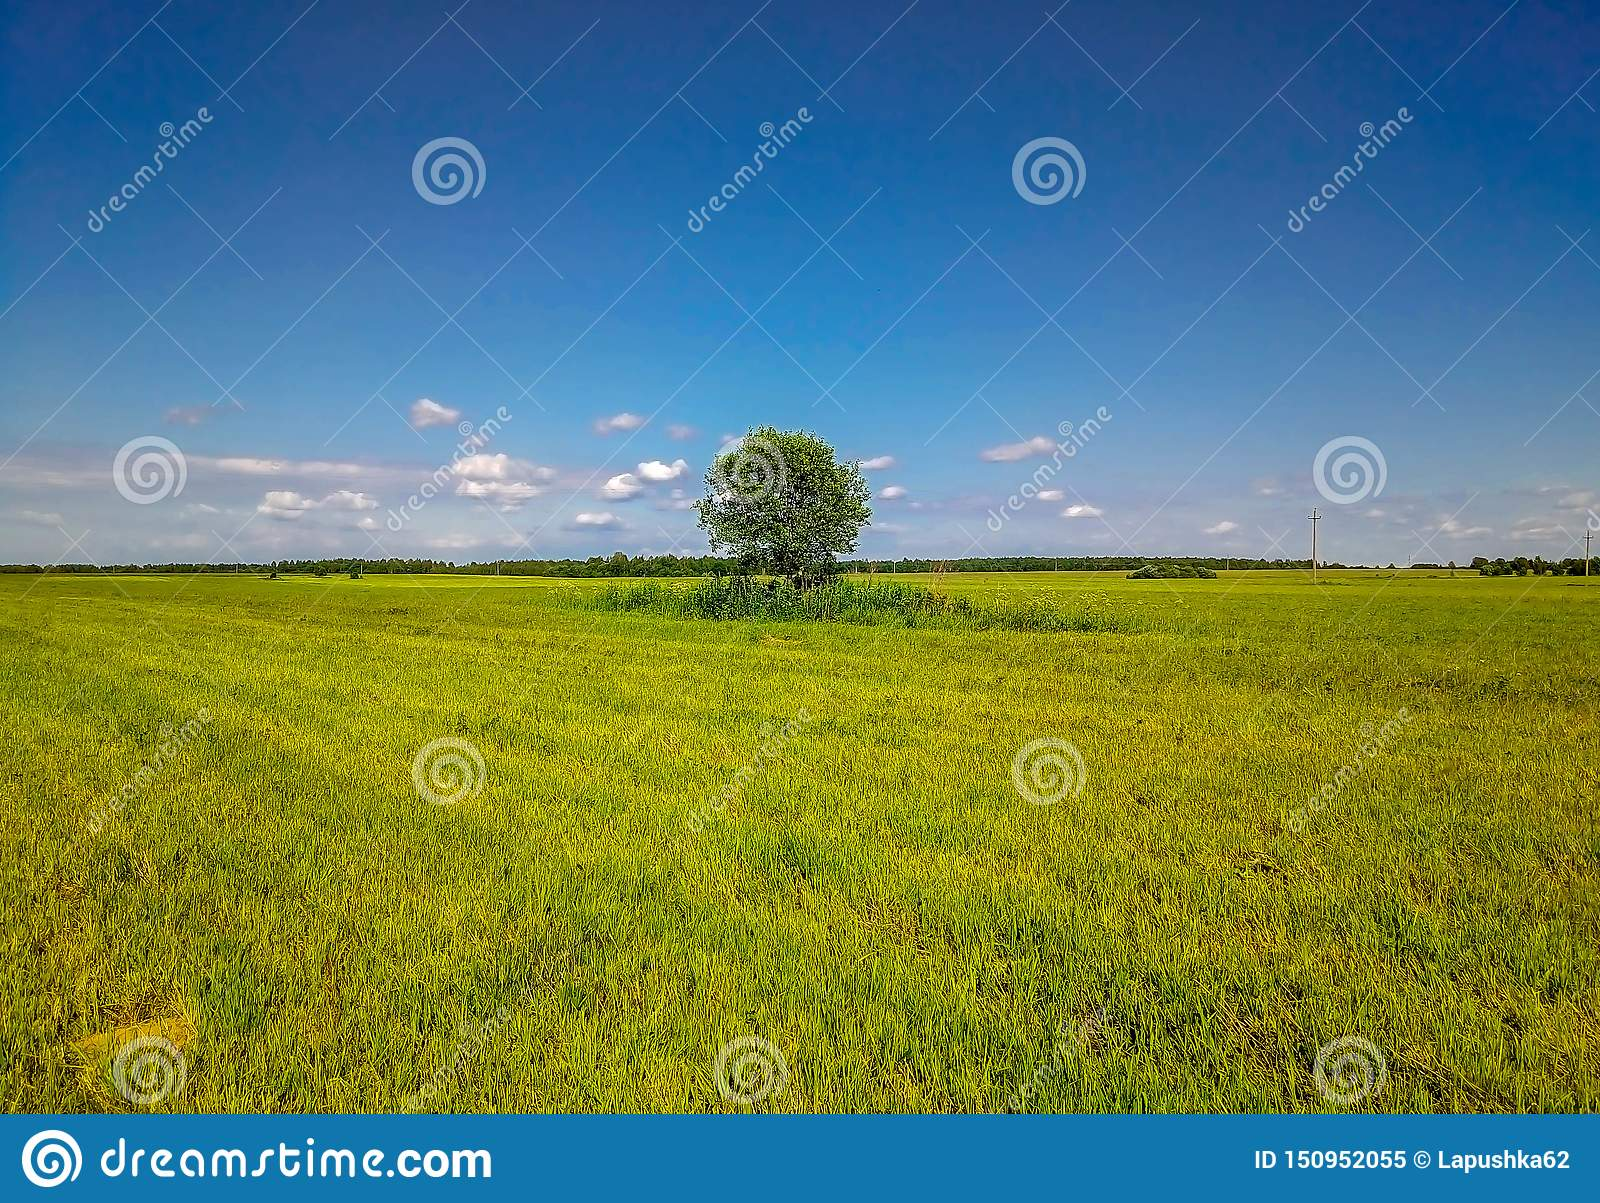 Background of blue sky and beveled grass